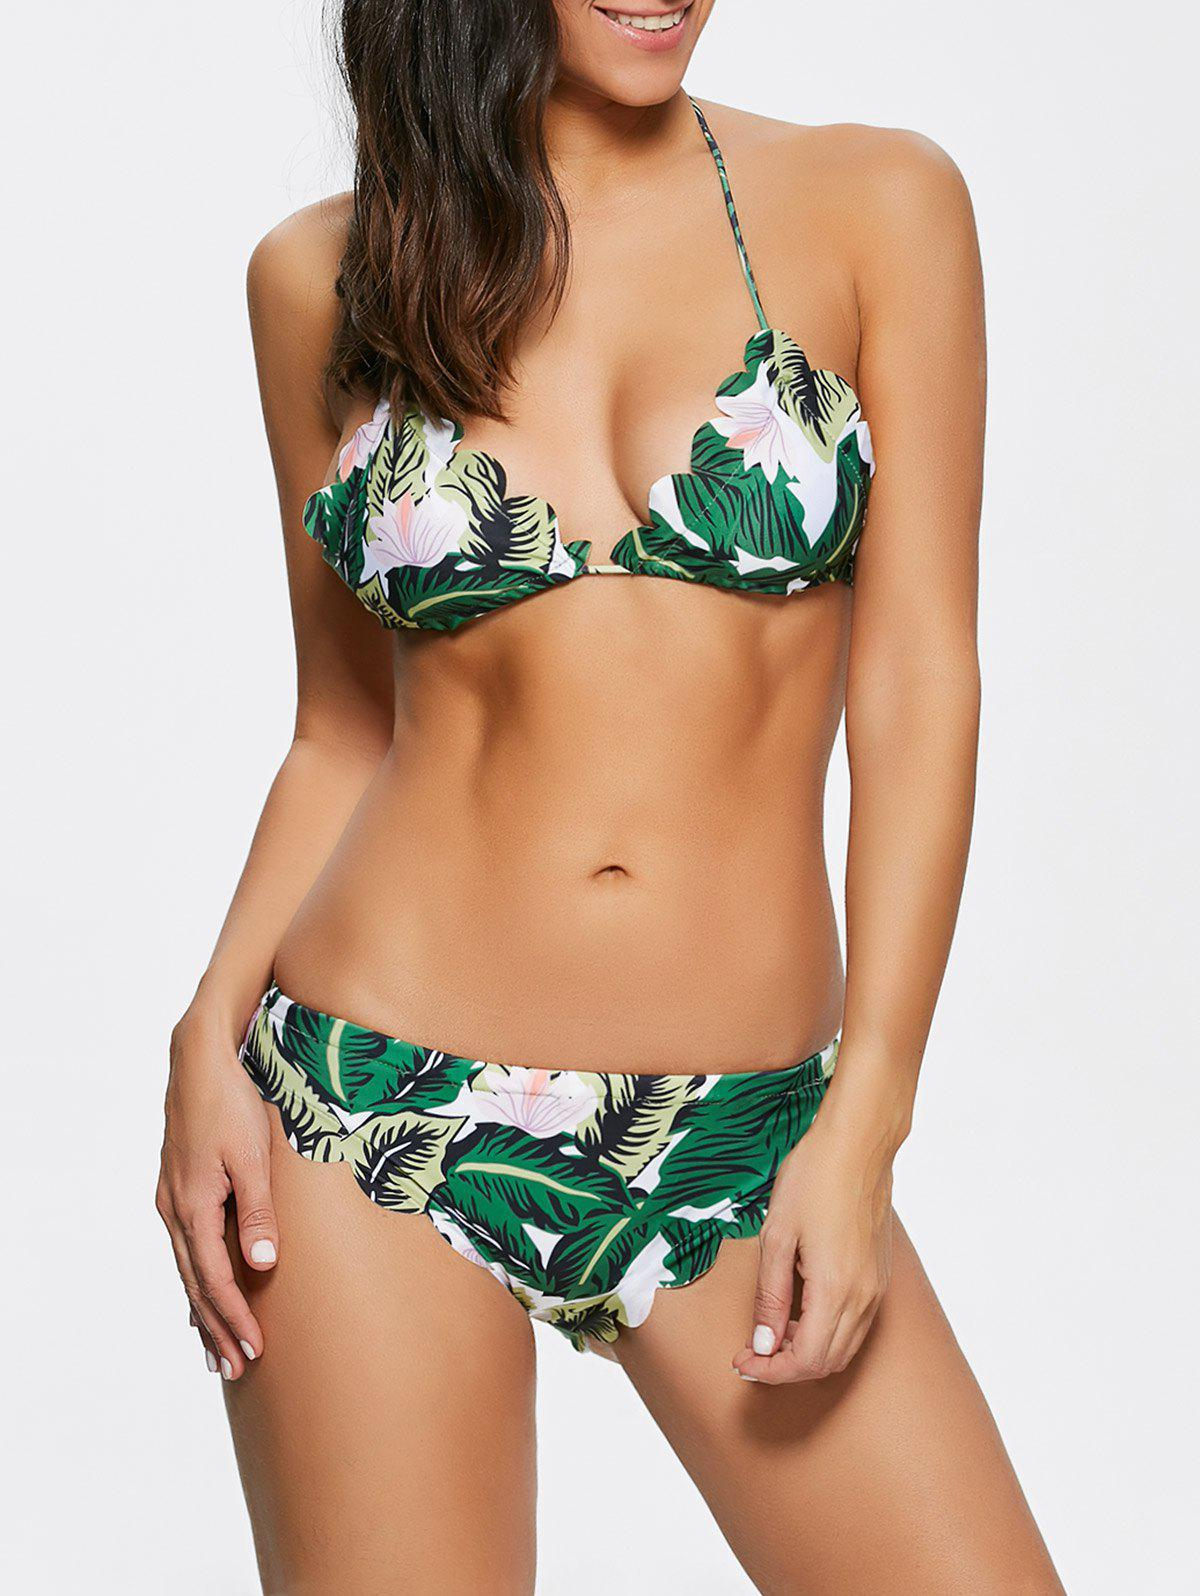 Halter Women's Tropical Bathing Suit - GREEN L